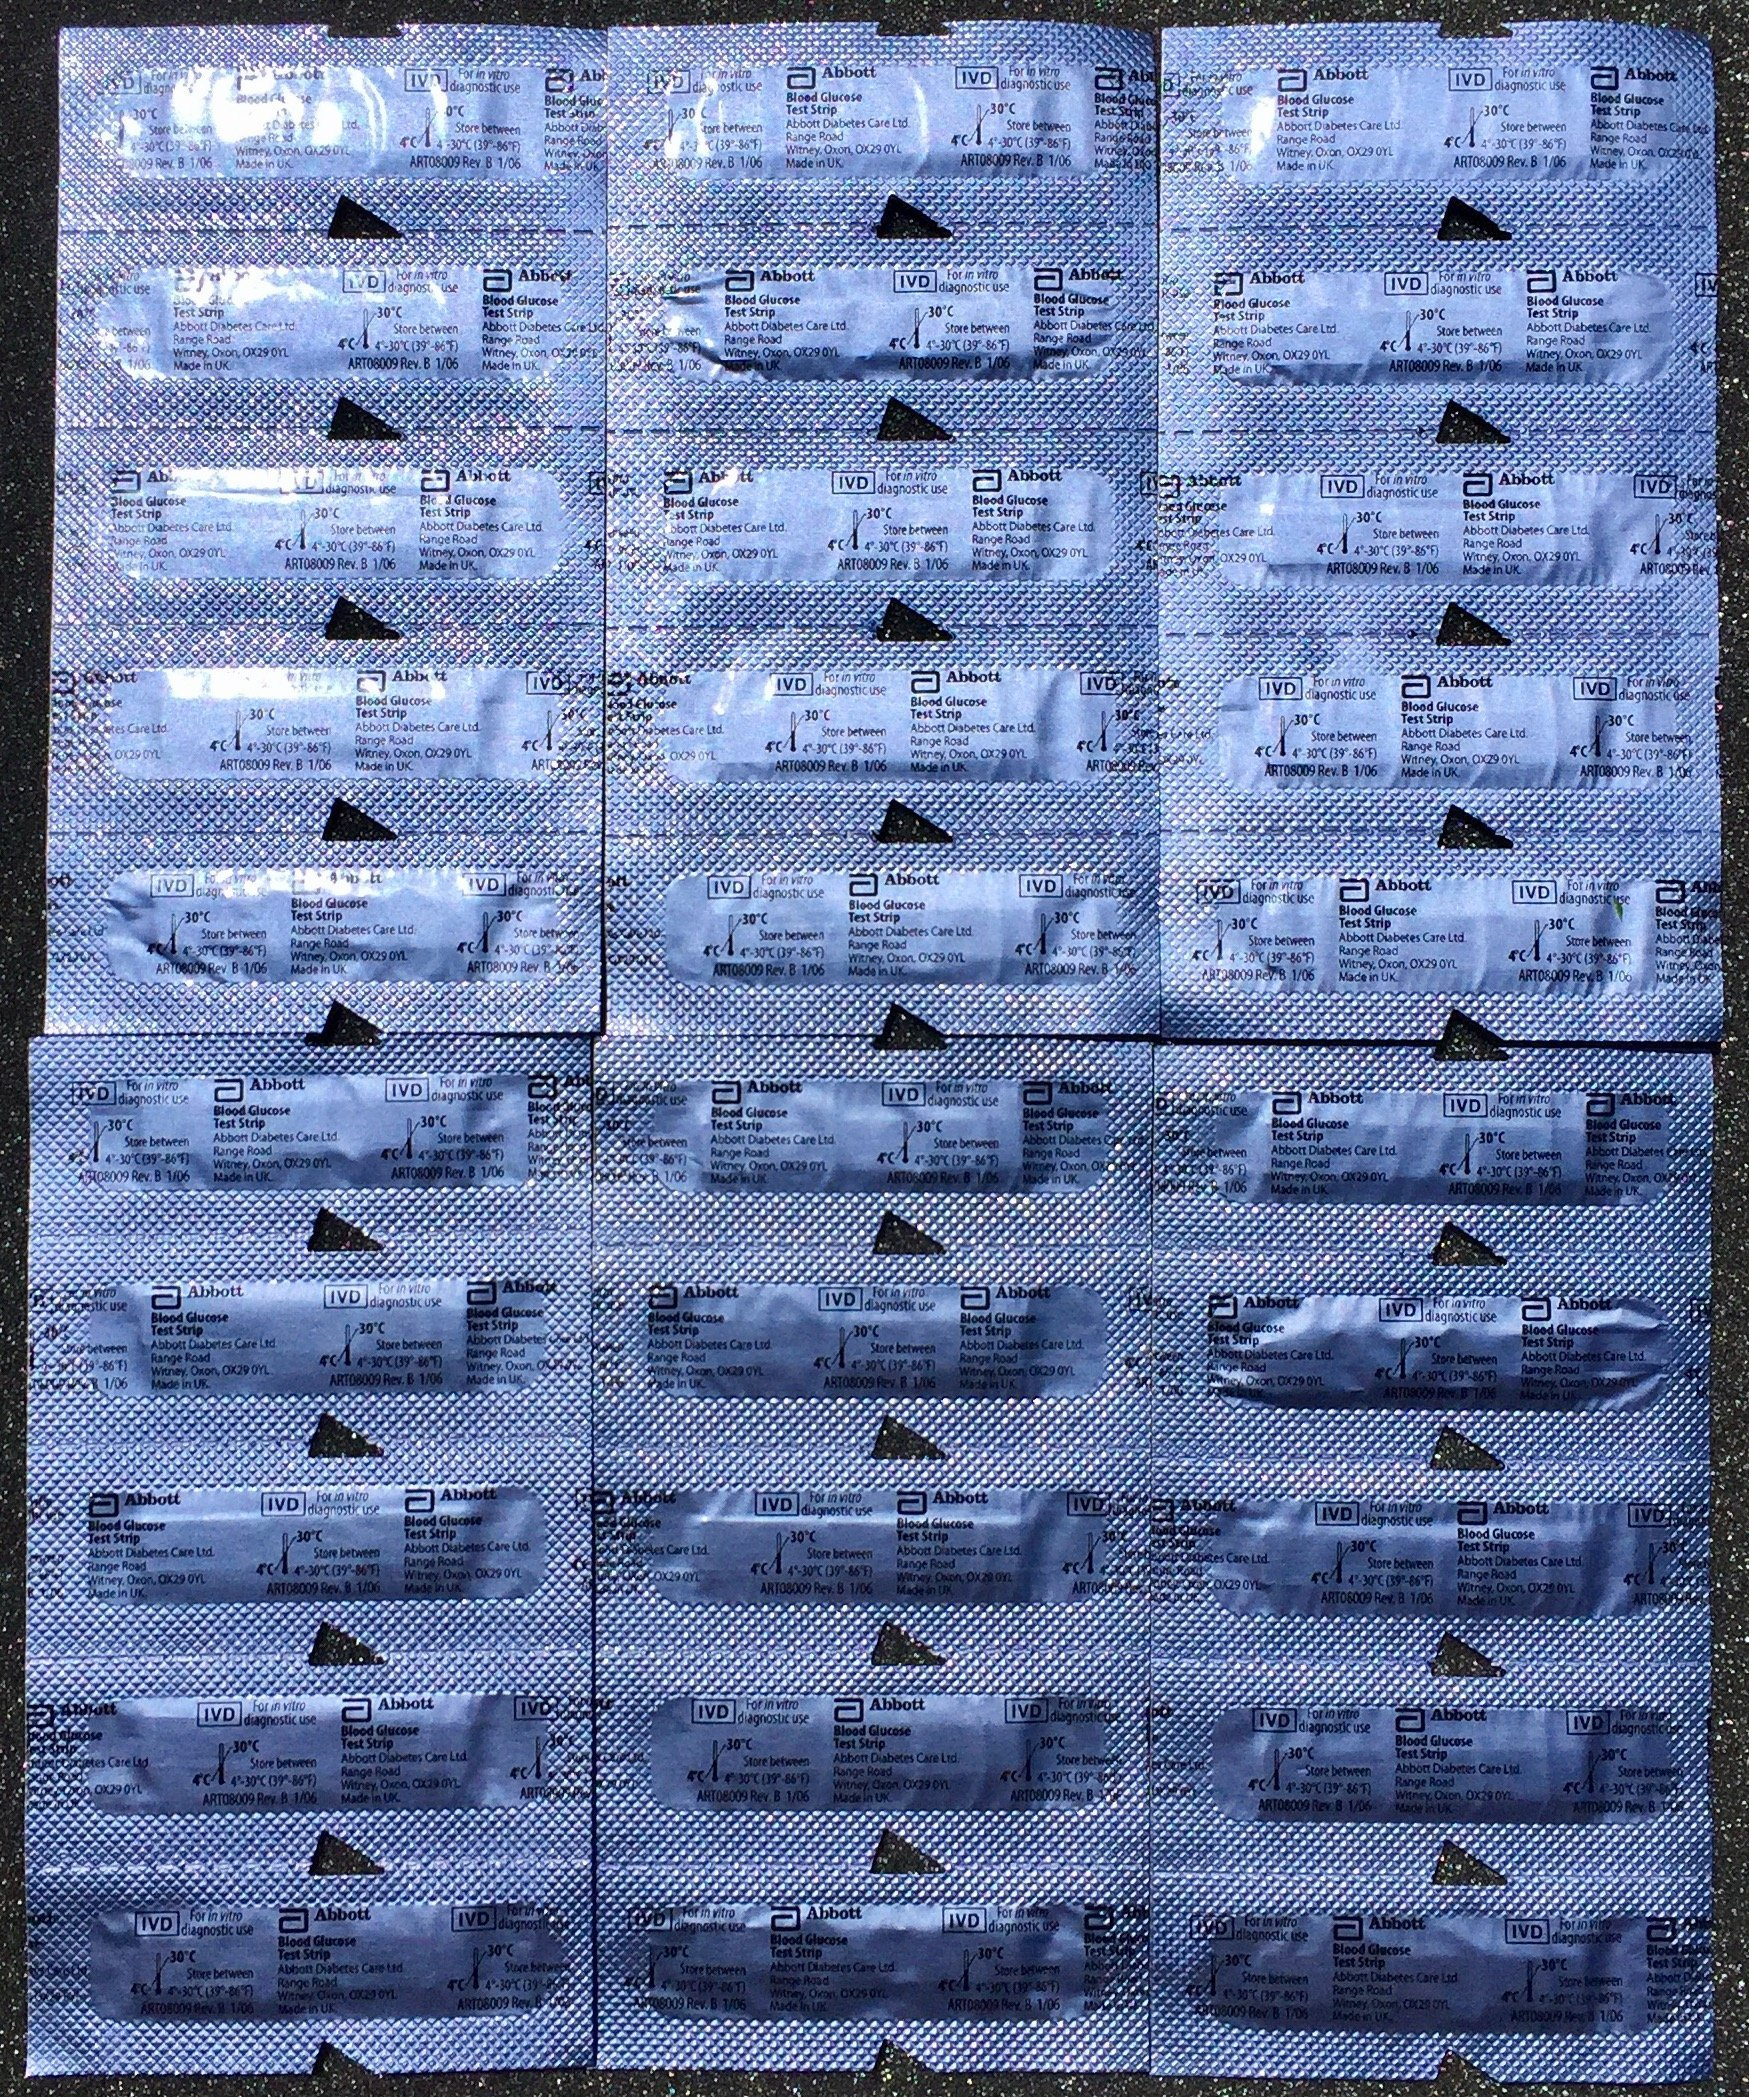 30 Precision Xtra Blood Glucose Test Strips, Unboxed, Sealed, Not Ketone Test Strips